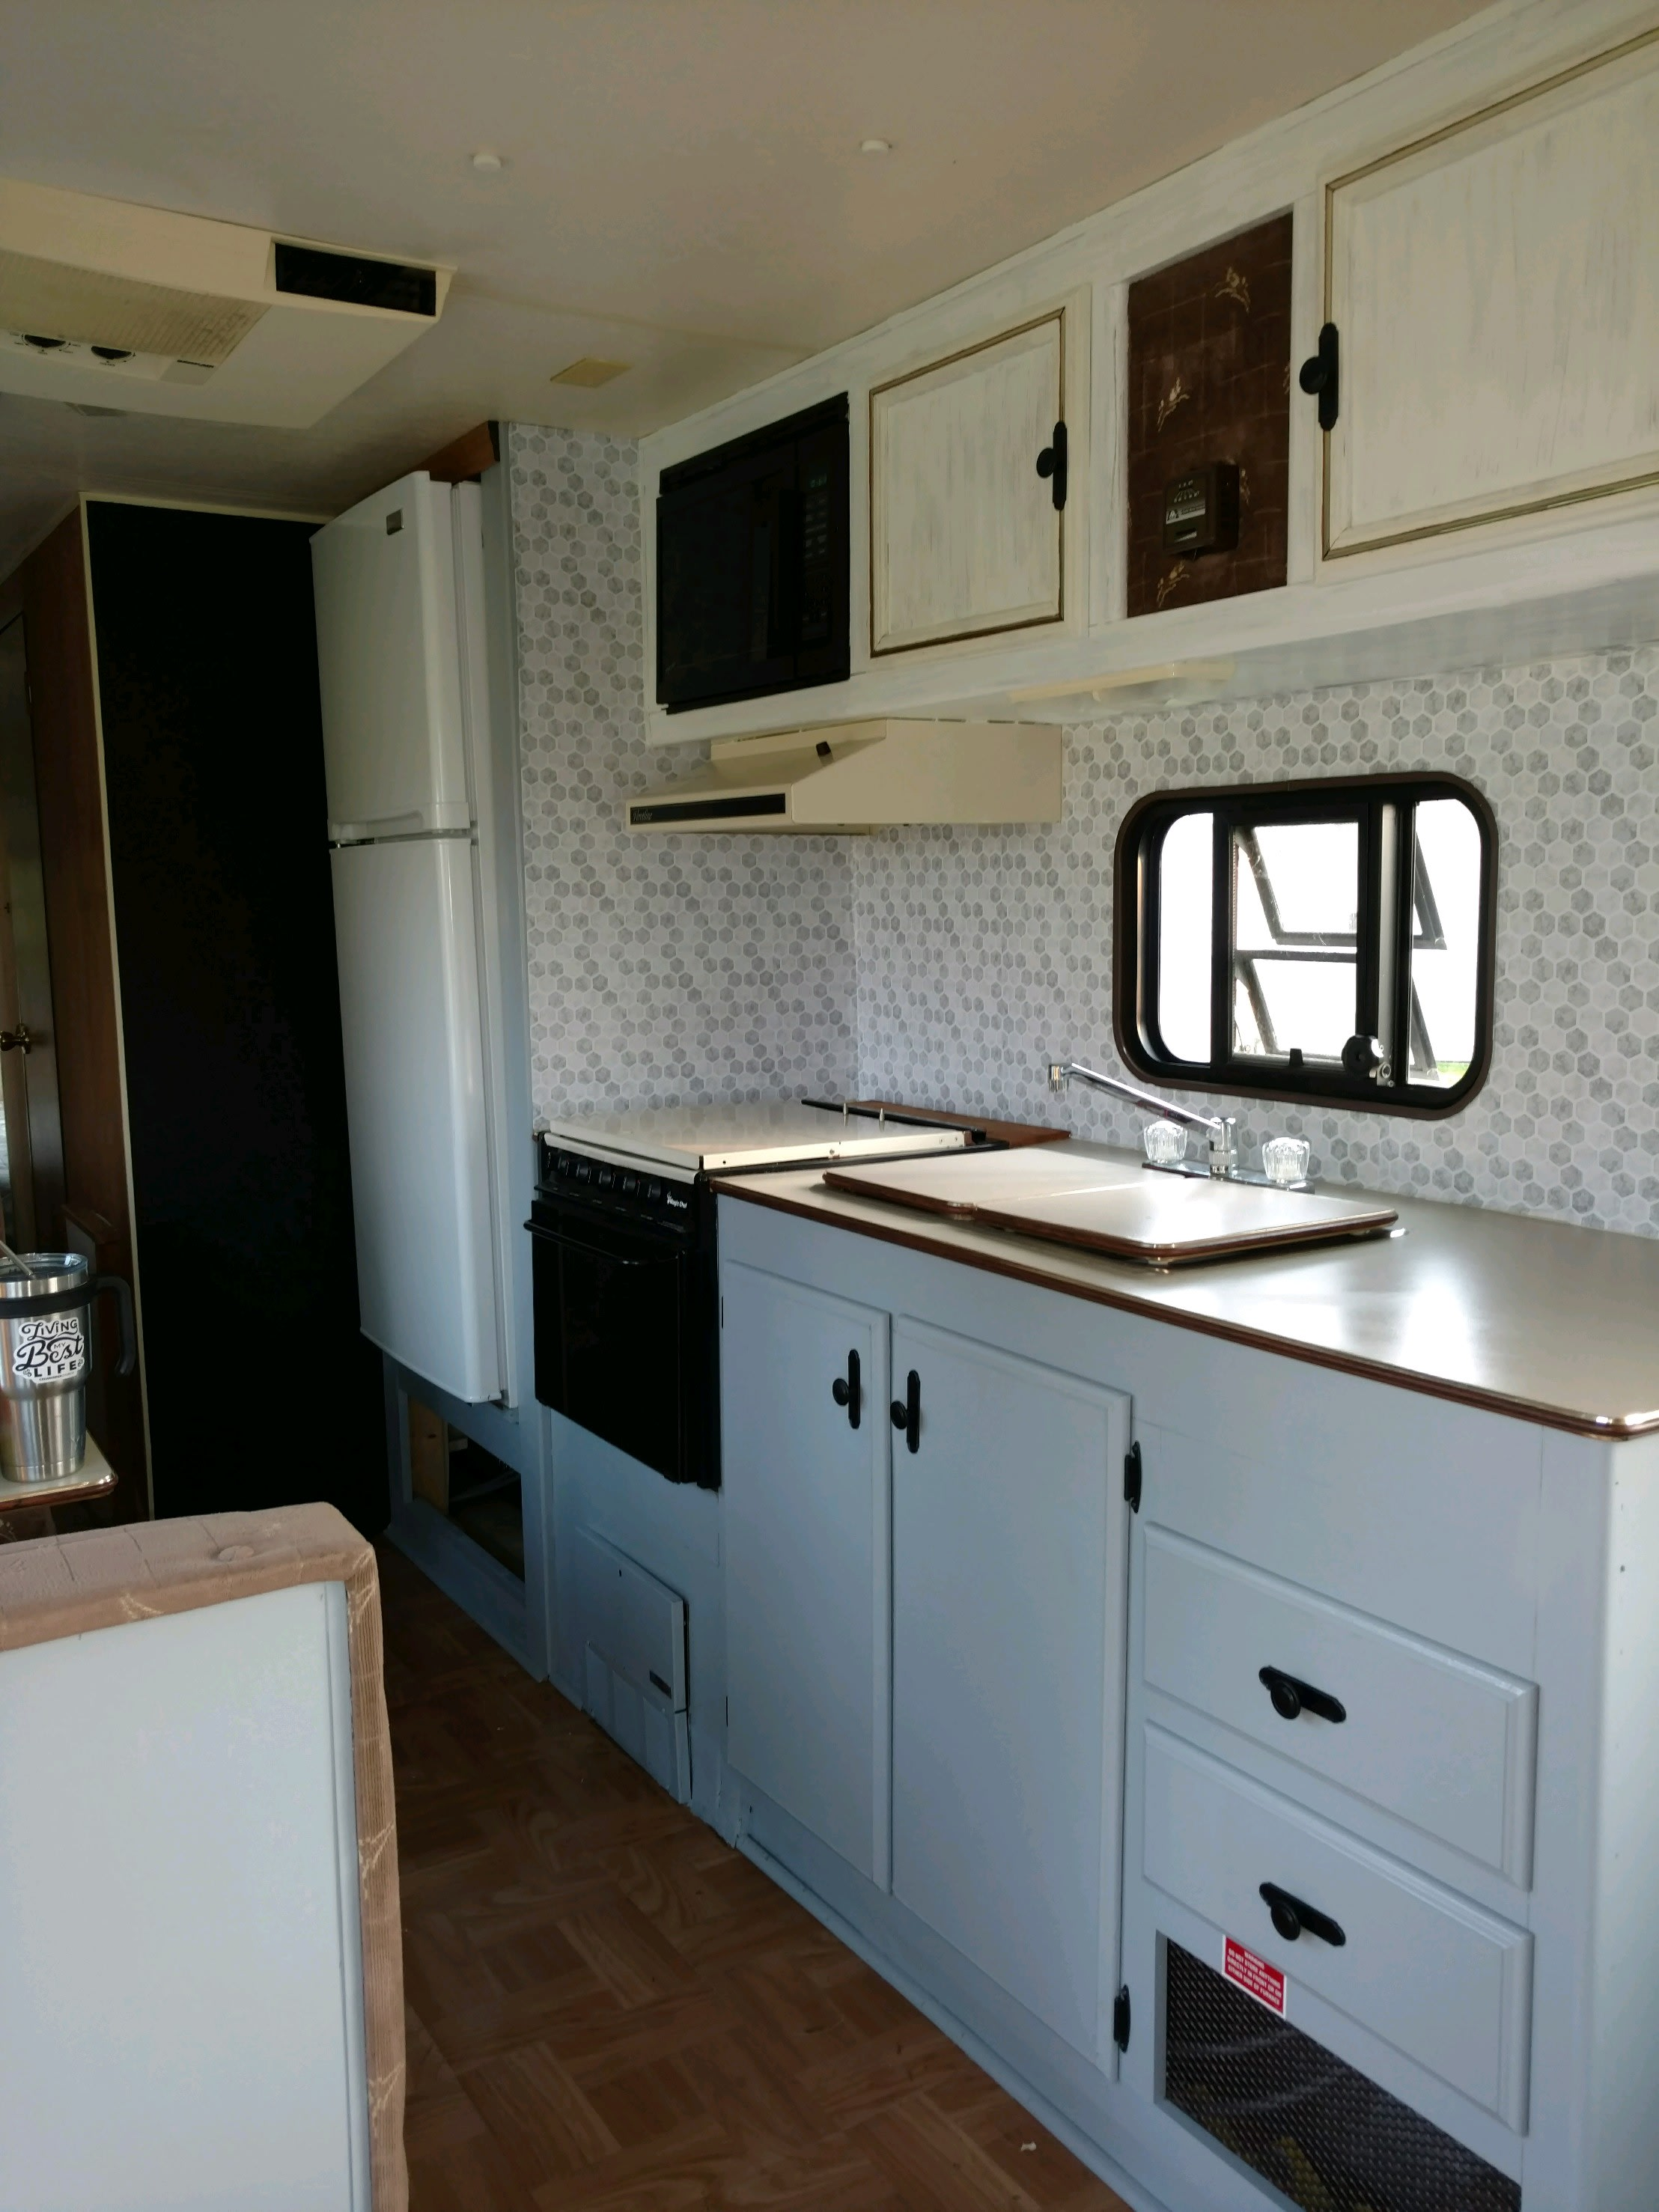 Eat - In dinette with great views.  Extra large refrigerator, microwave, stove, coffee pot, pots, pans, dishes, glassware, utensils, small grill, picnic table in pavilion conveniently located adjacent to RV. Fire ring available, wood at extra charge.  . Sportsmens SD 1993